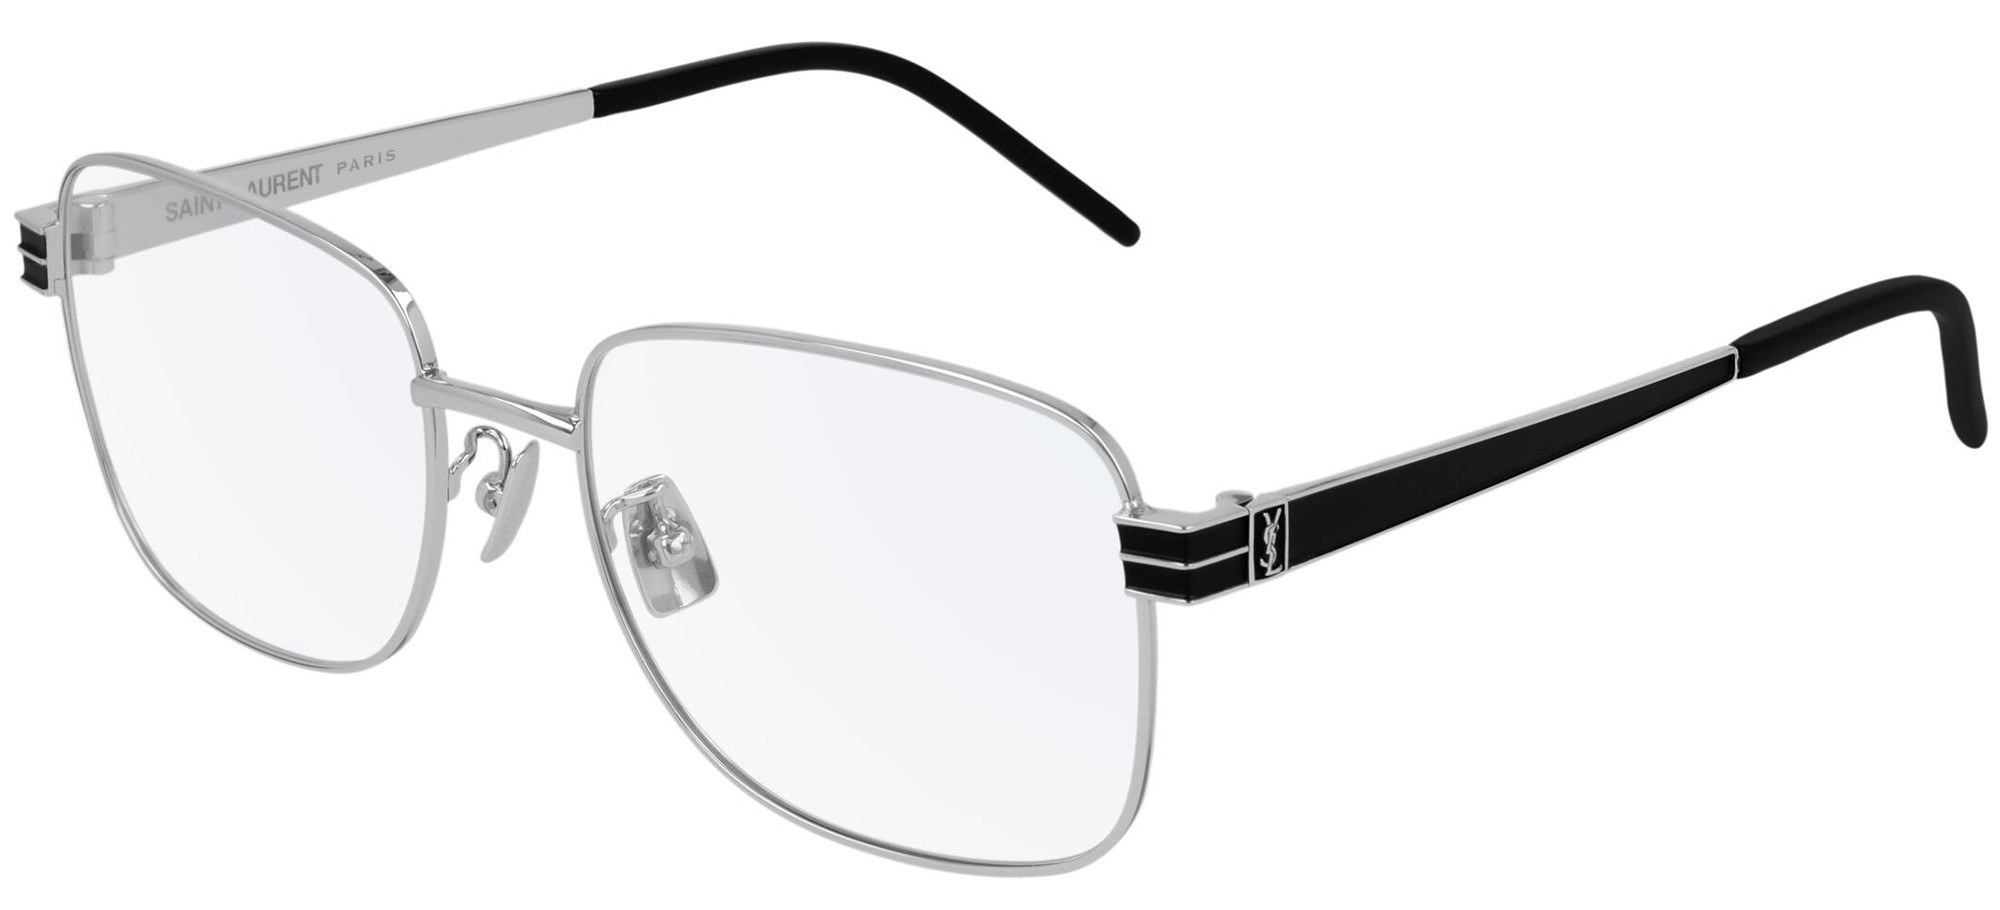 Saint Laurent SL M56